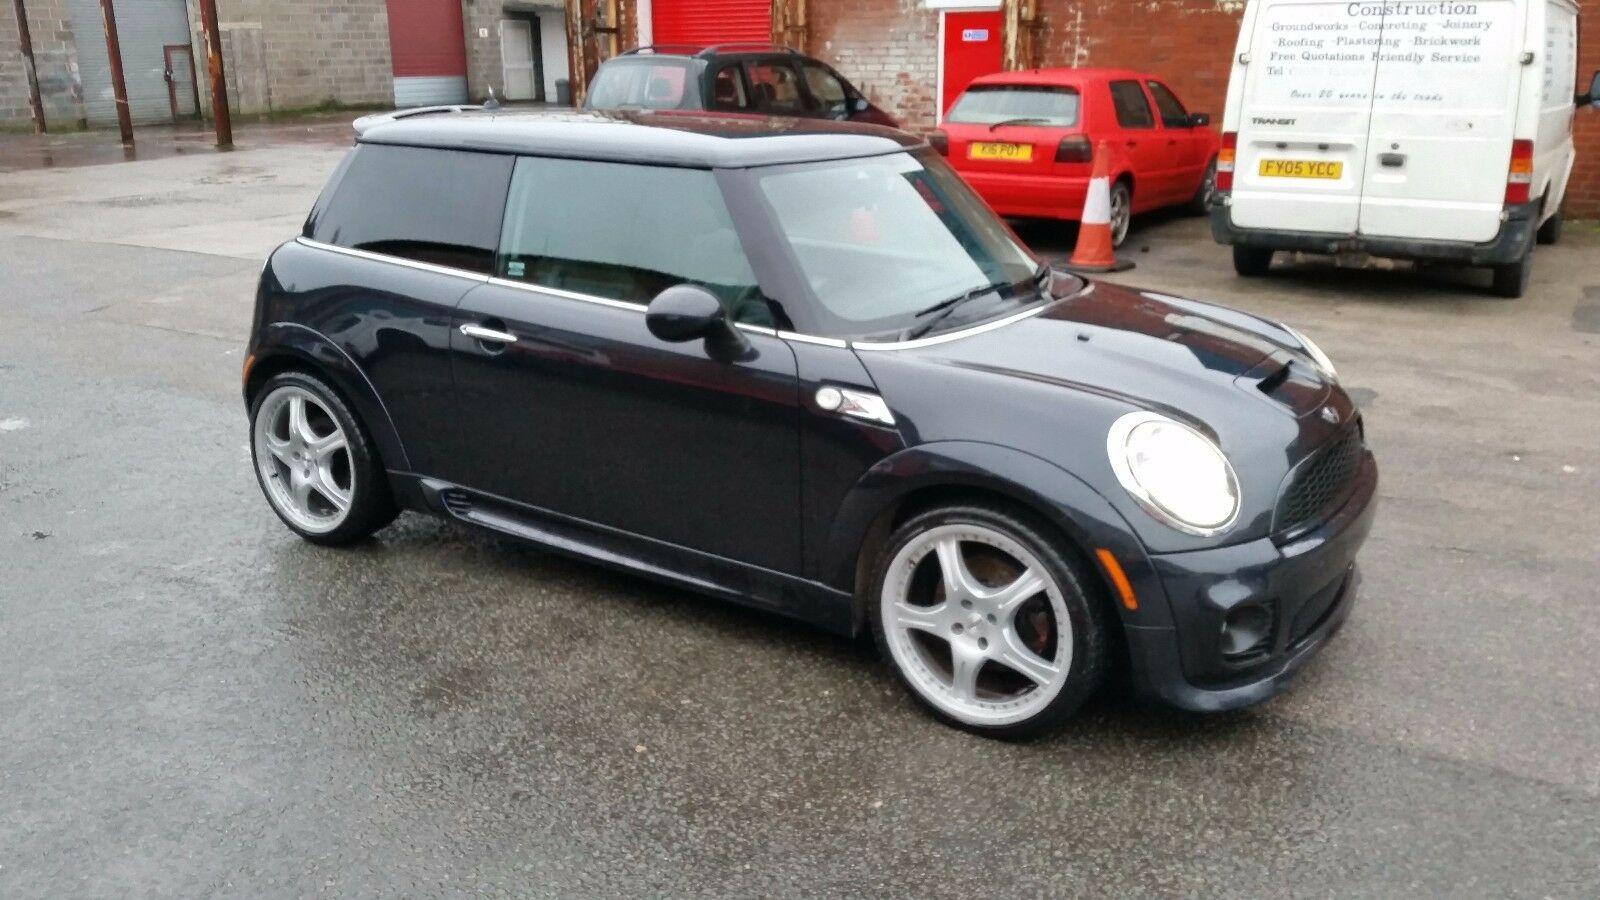 mini cooper s r56 1 6 turbo jcw aero kit black breaking spares parts salvage picclick uk. Black Bedroom Furniture Sets. Home Design Ideas